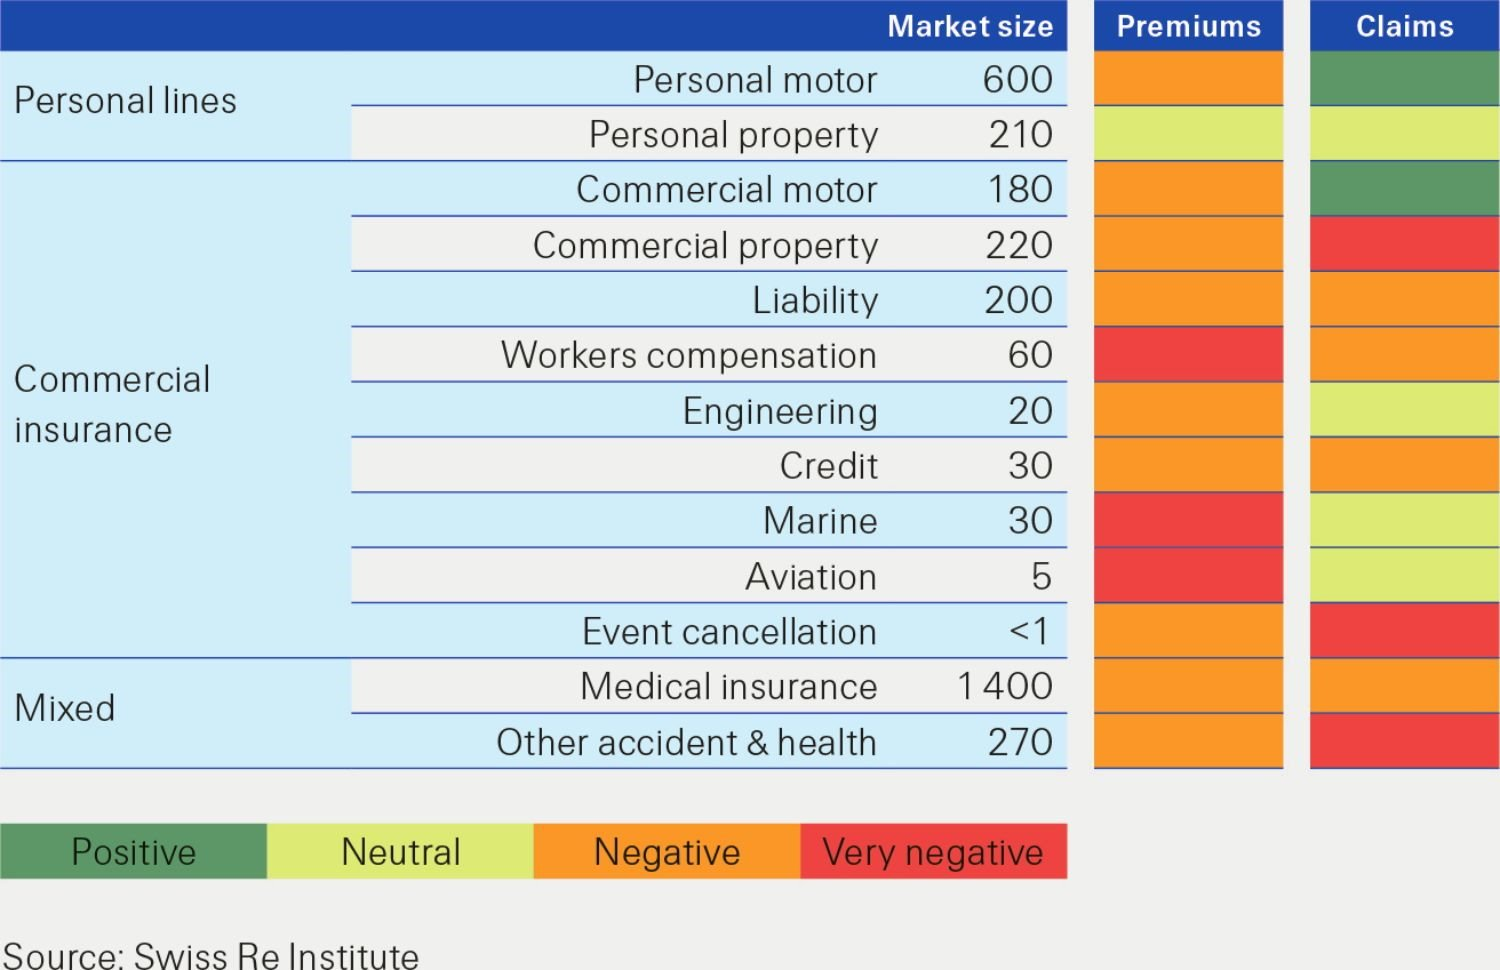 This infographic shows personal lines and commercial insurance. sigma 4/2020 extra